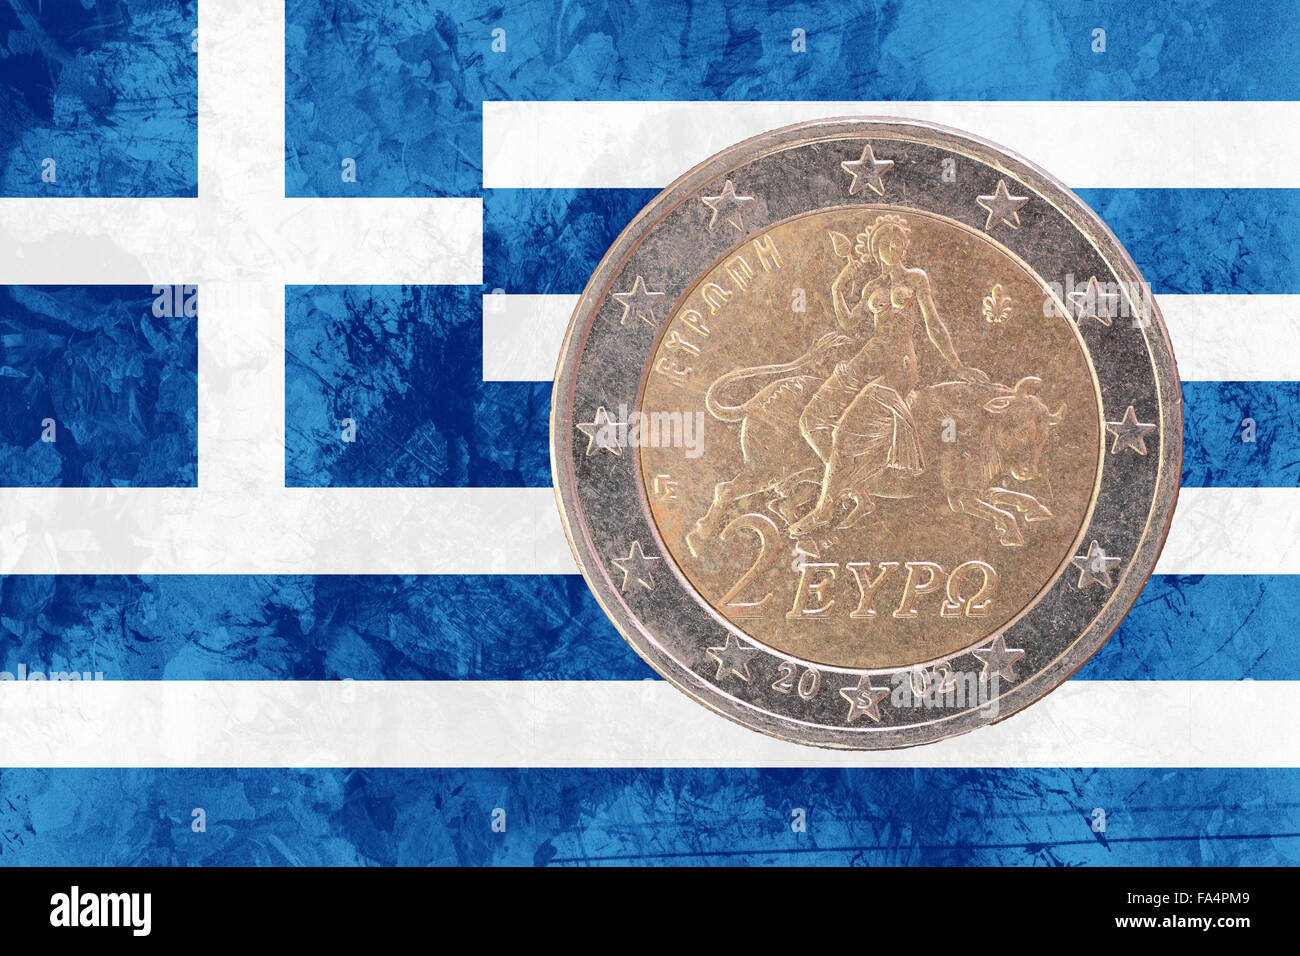 Two euros coin from Greece isolated on the national greek flag as background - Stock Image